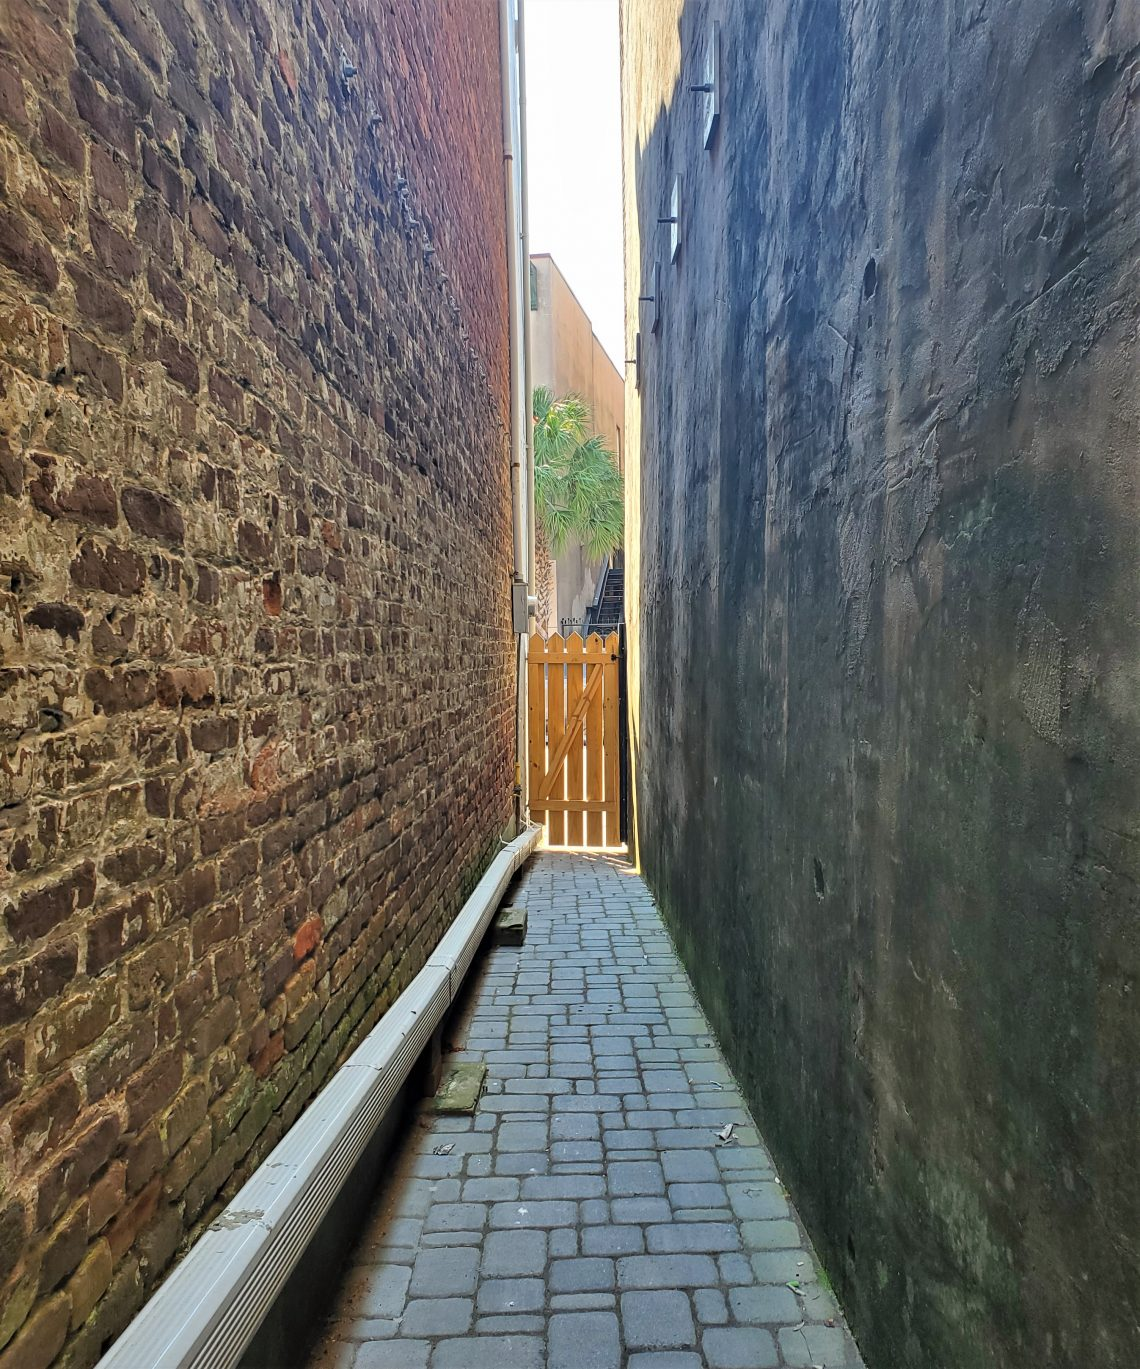 Between downtown buildings you can often find a tight squeeze of an access path. If you exited this one and turned left, you would be walking down King Street -- right past the wonderful old cinema, the American Theater, which was appeared on the other side of the screen in the film The Notebook.